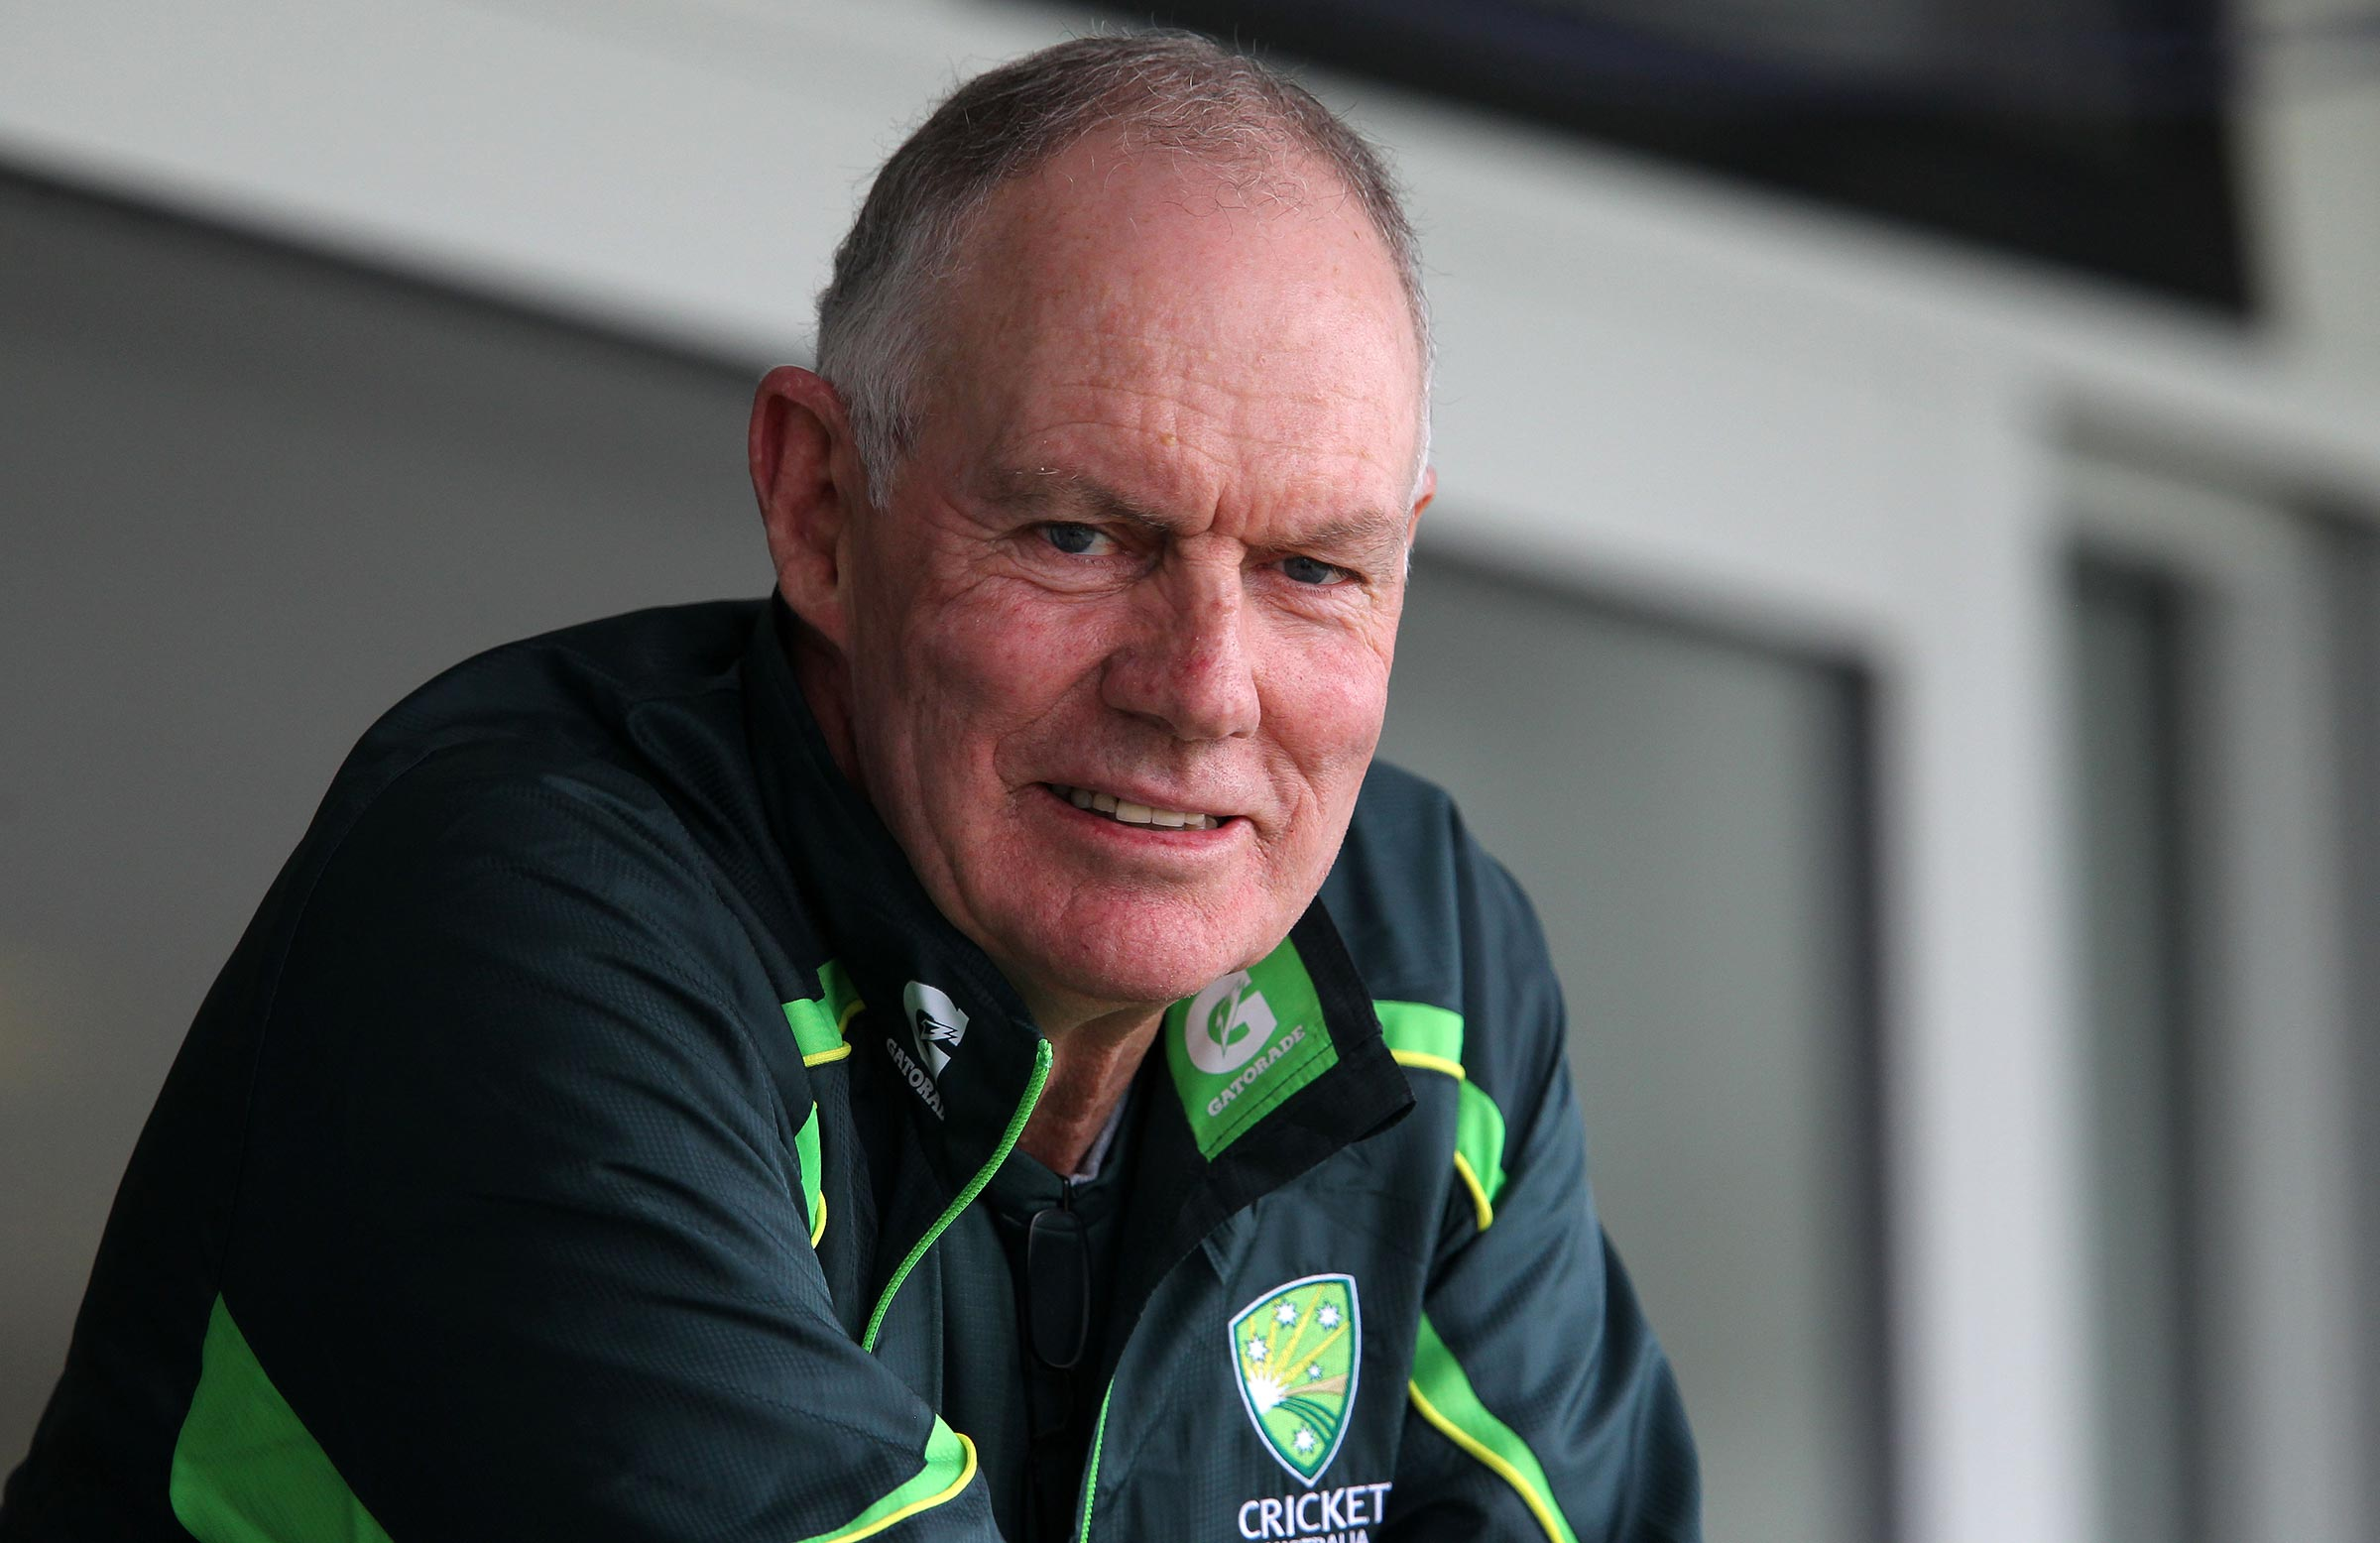 Chappell knows young players well through his role as National Talent Manager // Getty